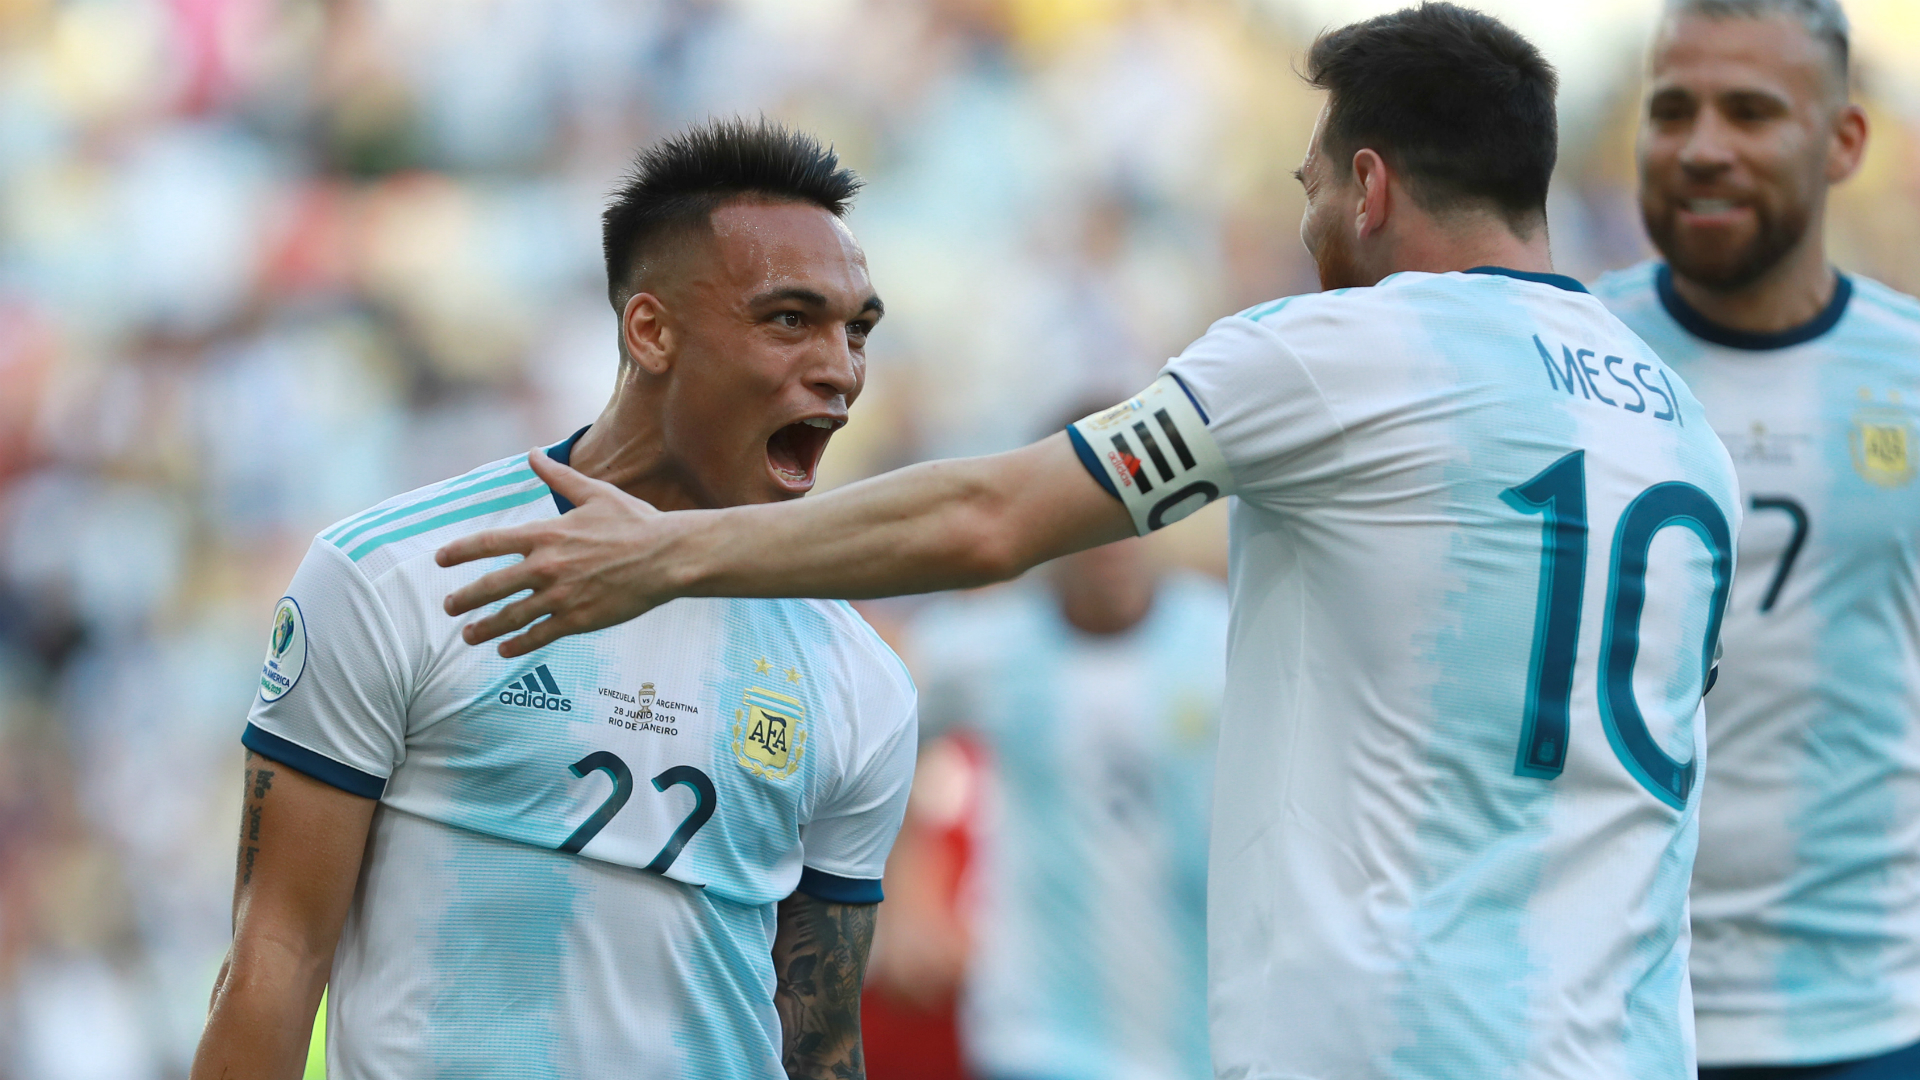 Lautaro Martinez's agent says that if Lionel Messi wants to play with the Inter striker, he should sign for the Nerazzurri.